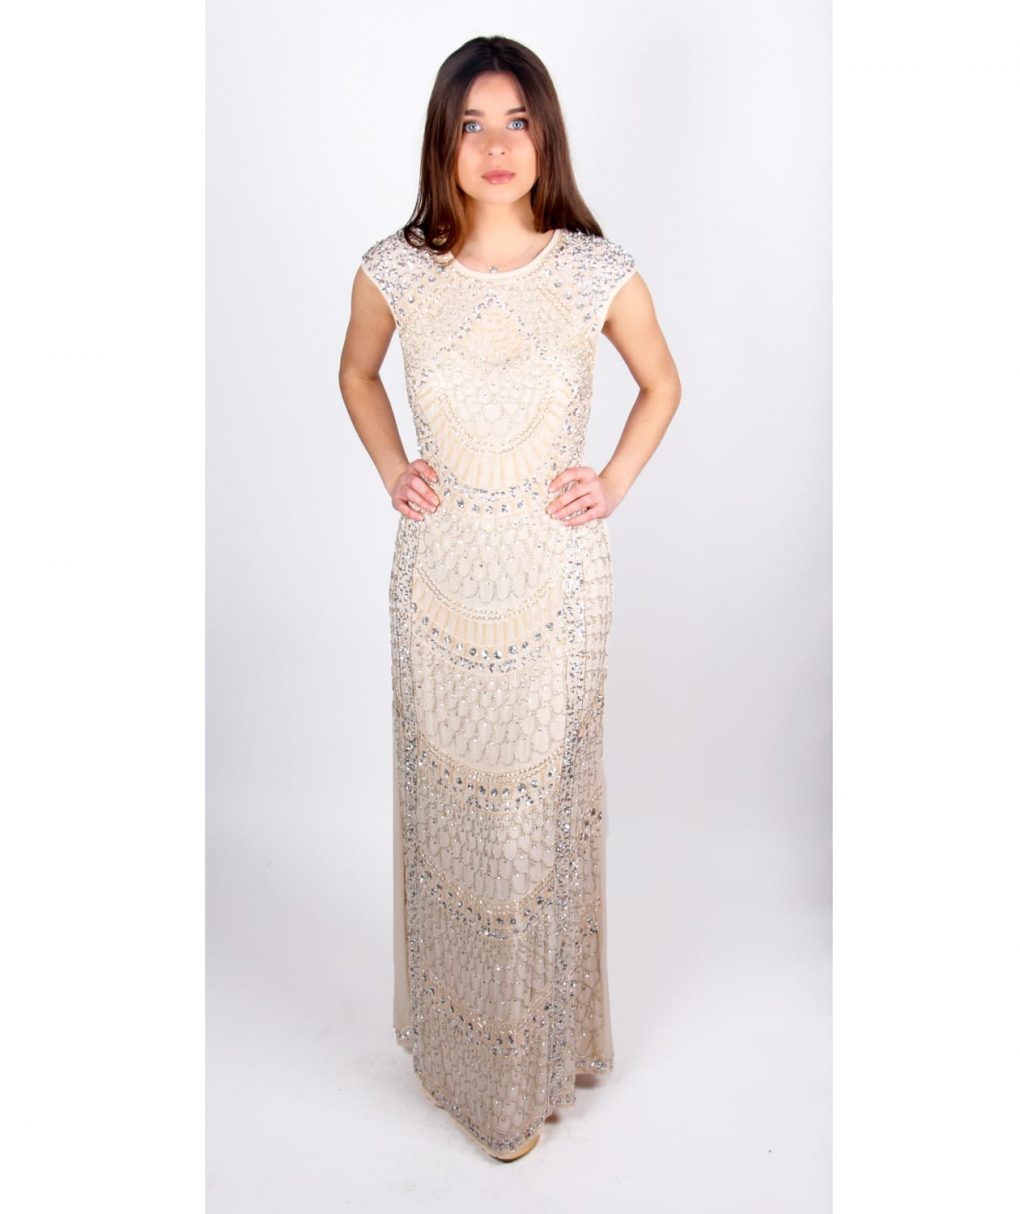 Alila Taupe Sequin Gown by Lace & Beads.